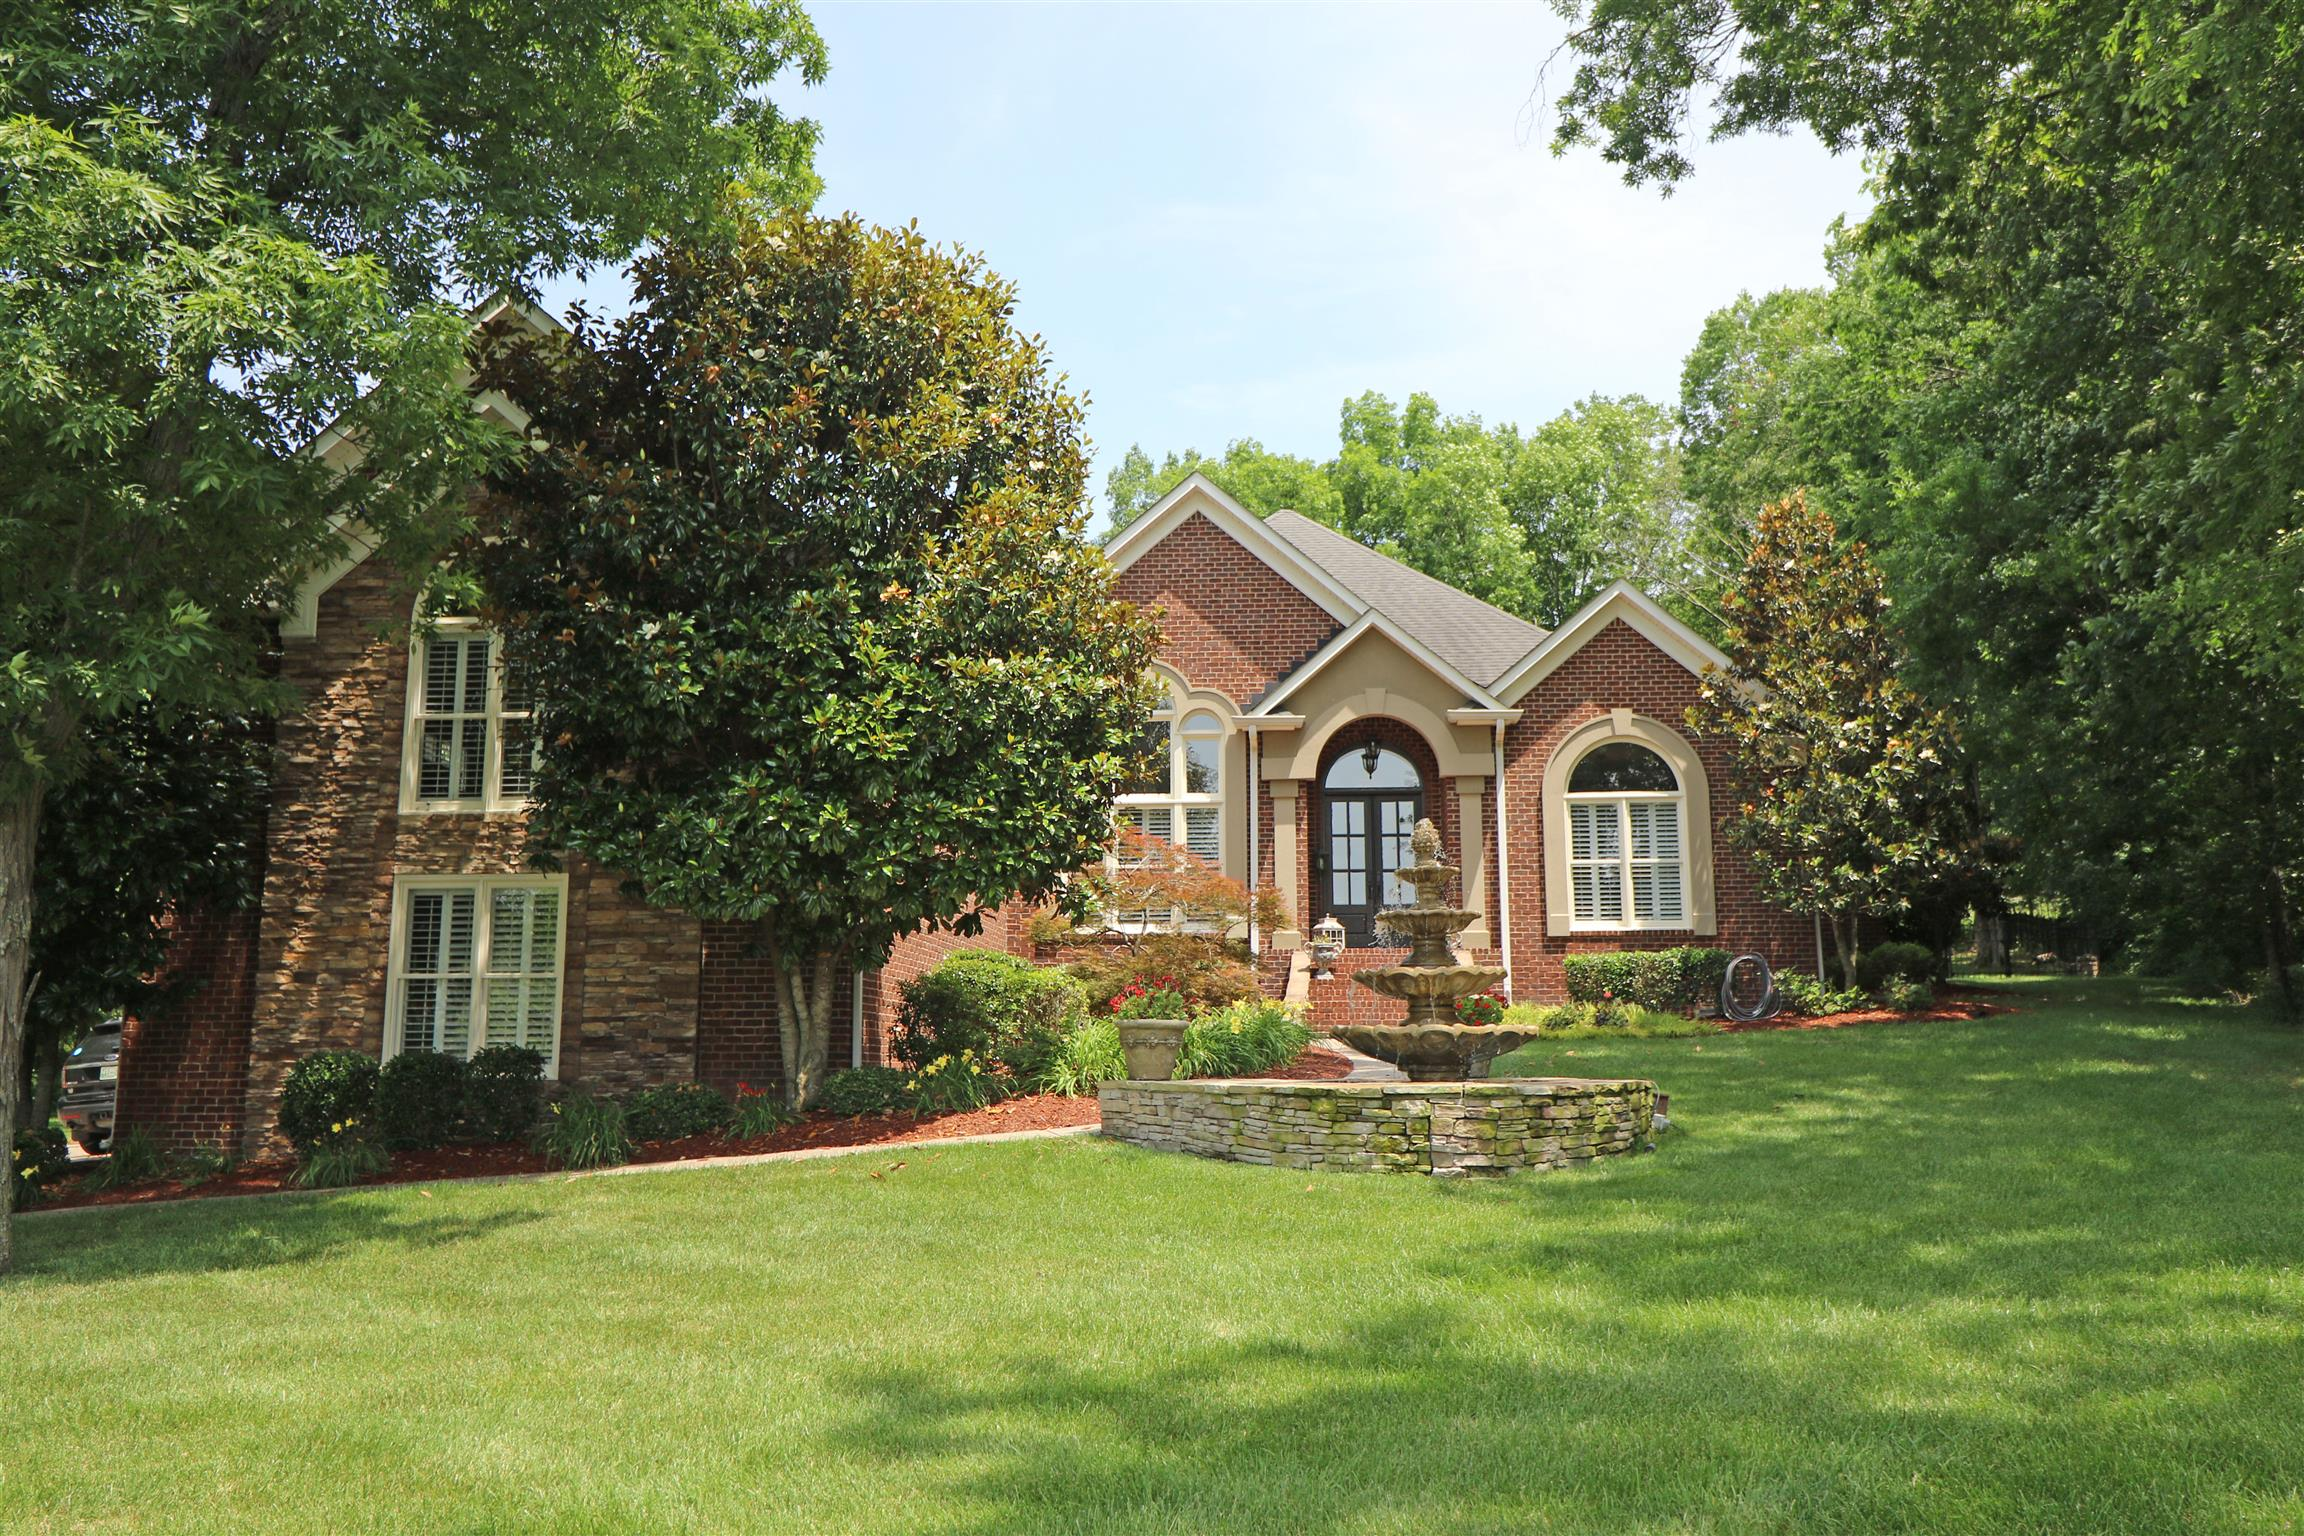 105 Oakmont Pl, Lebanon, TN 37087 - Lebanon, TN real estate listing